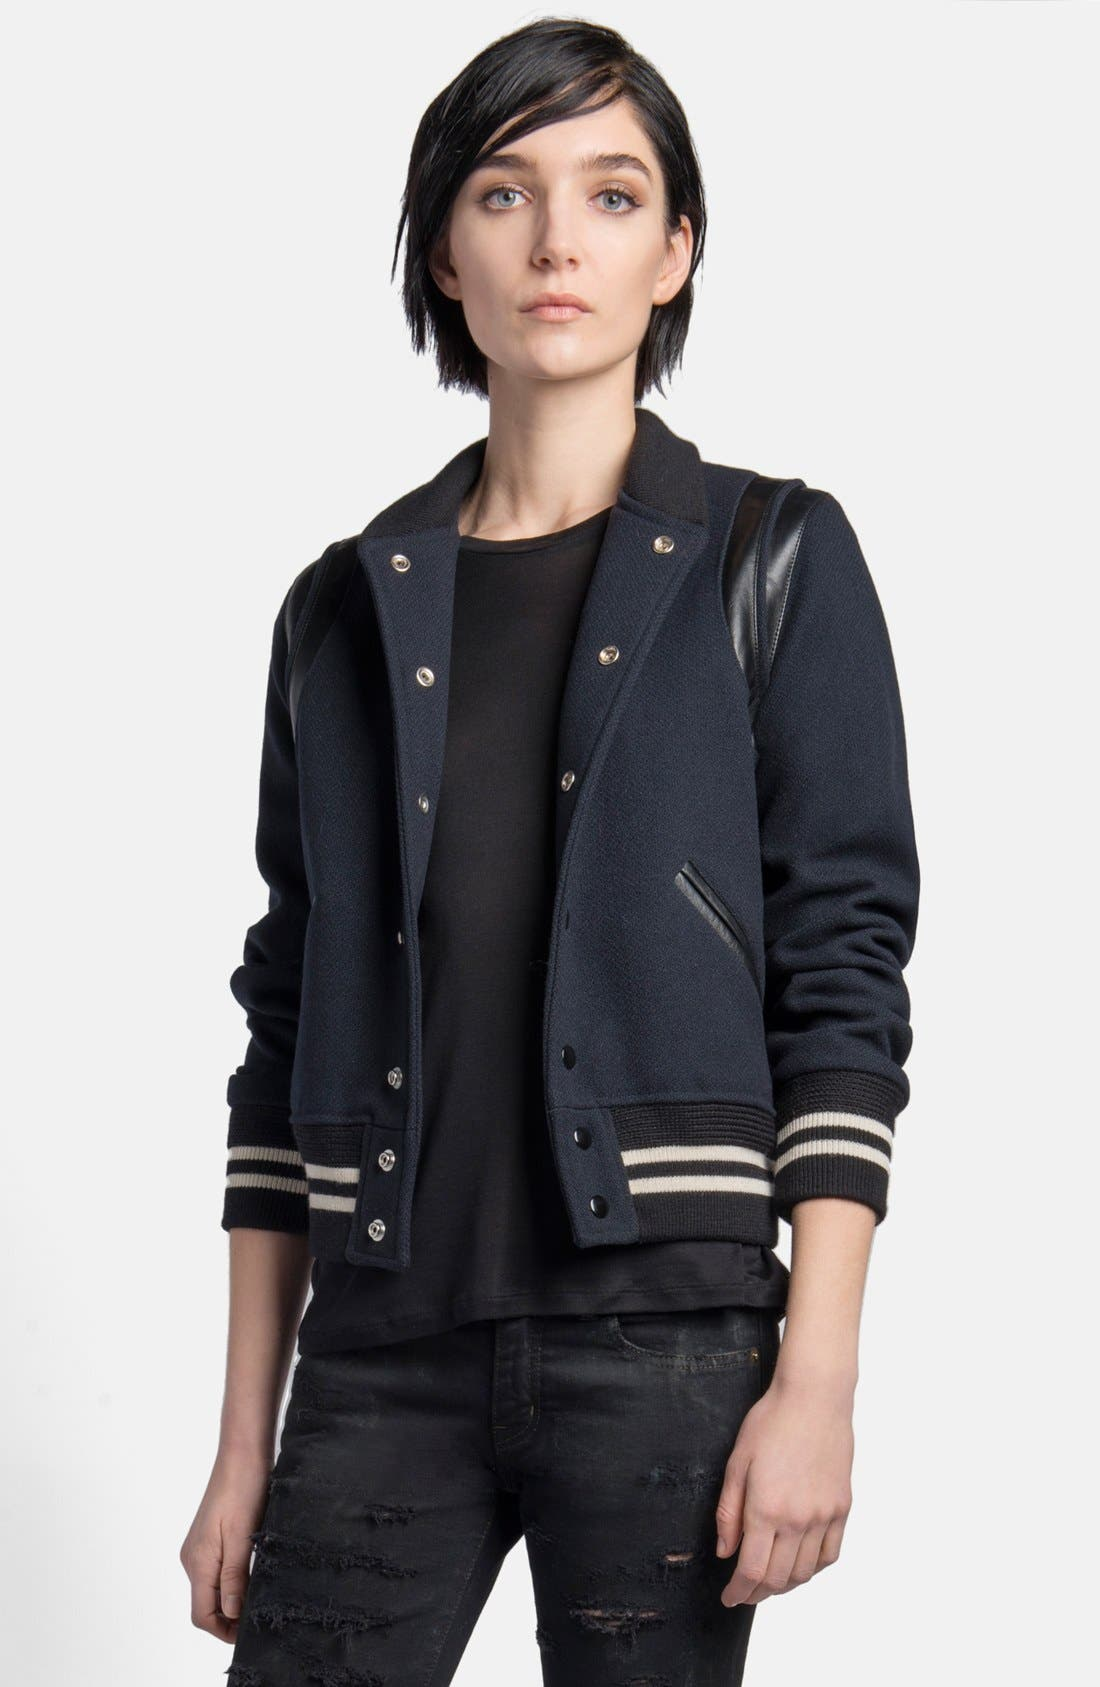 Alternate Image 1 Selected - Saint Laurent 'Teddy' Leather Trim Bomber Jacket